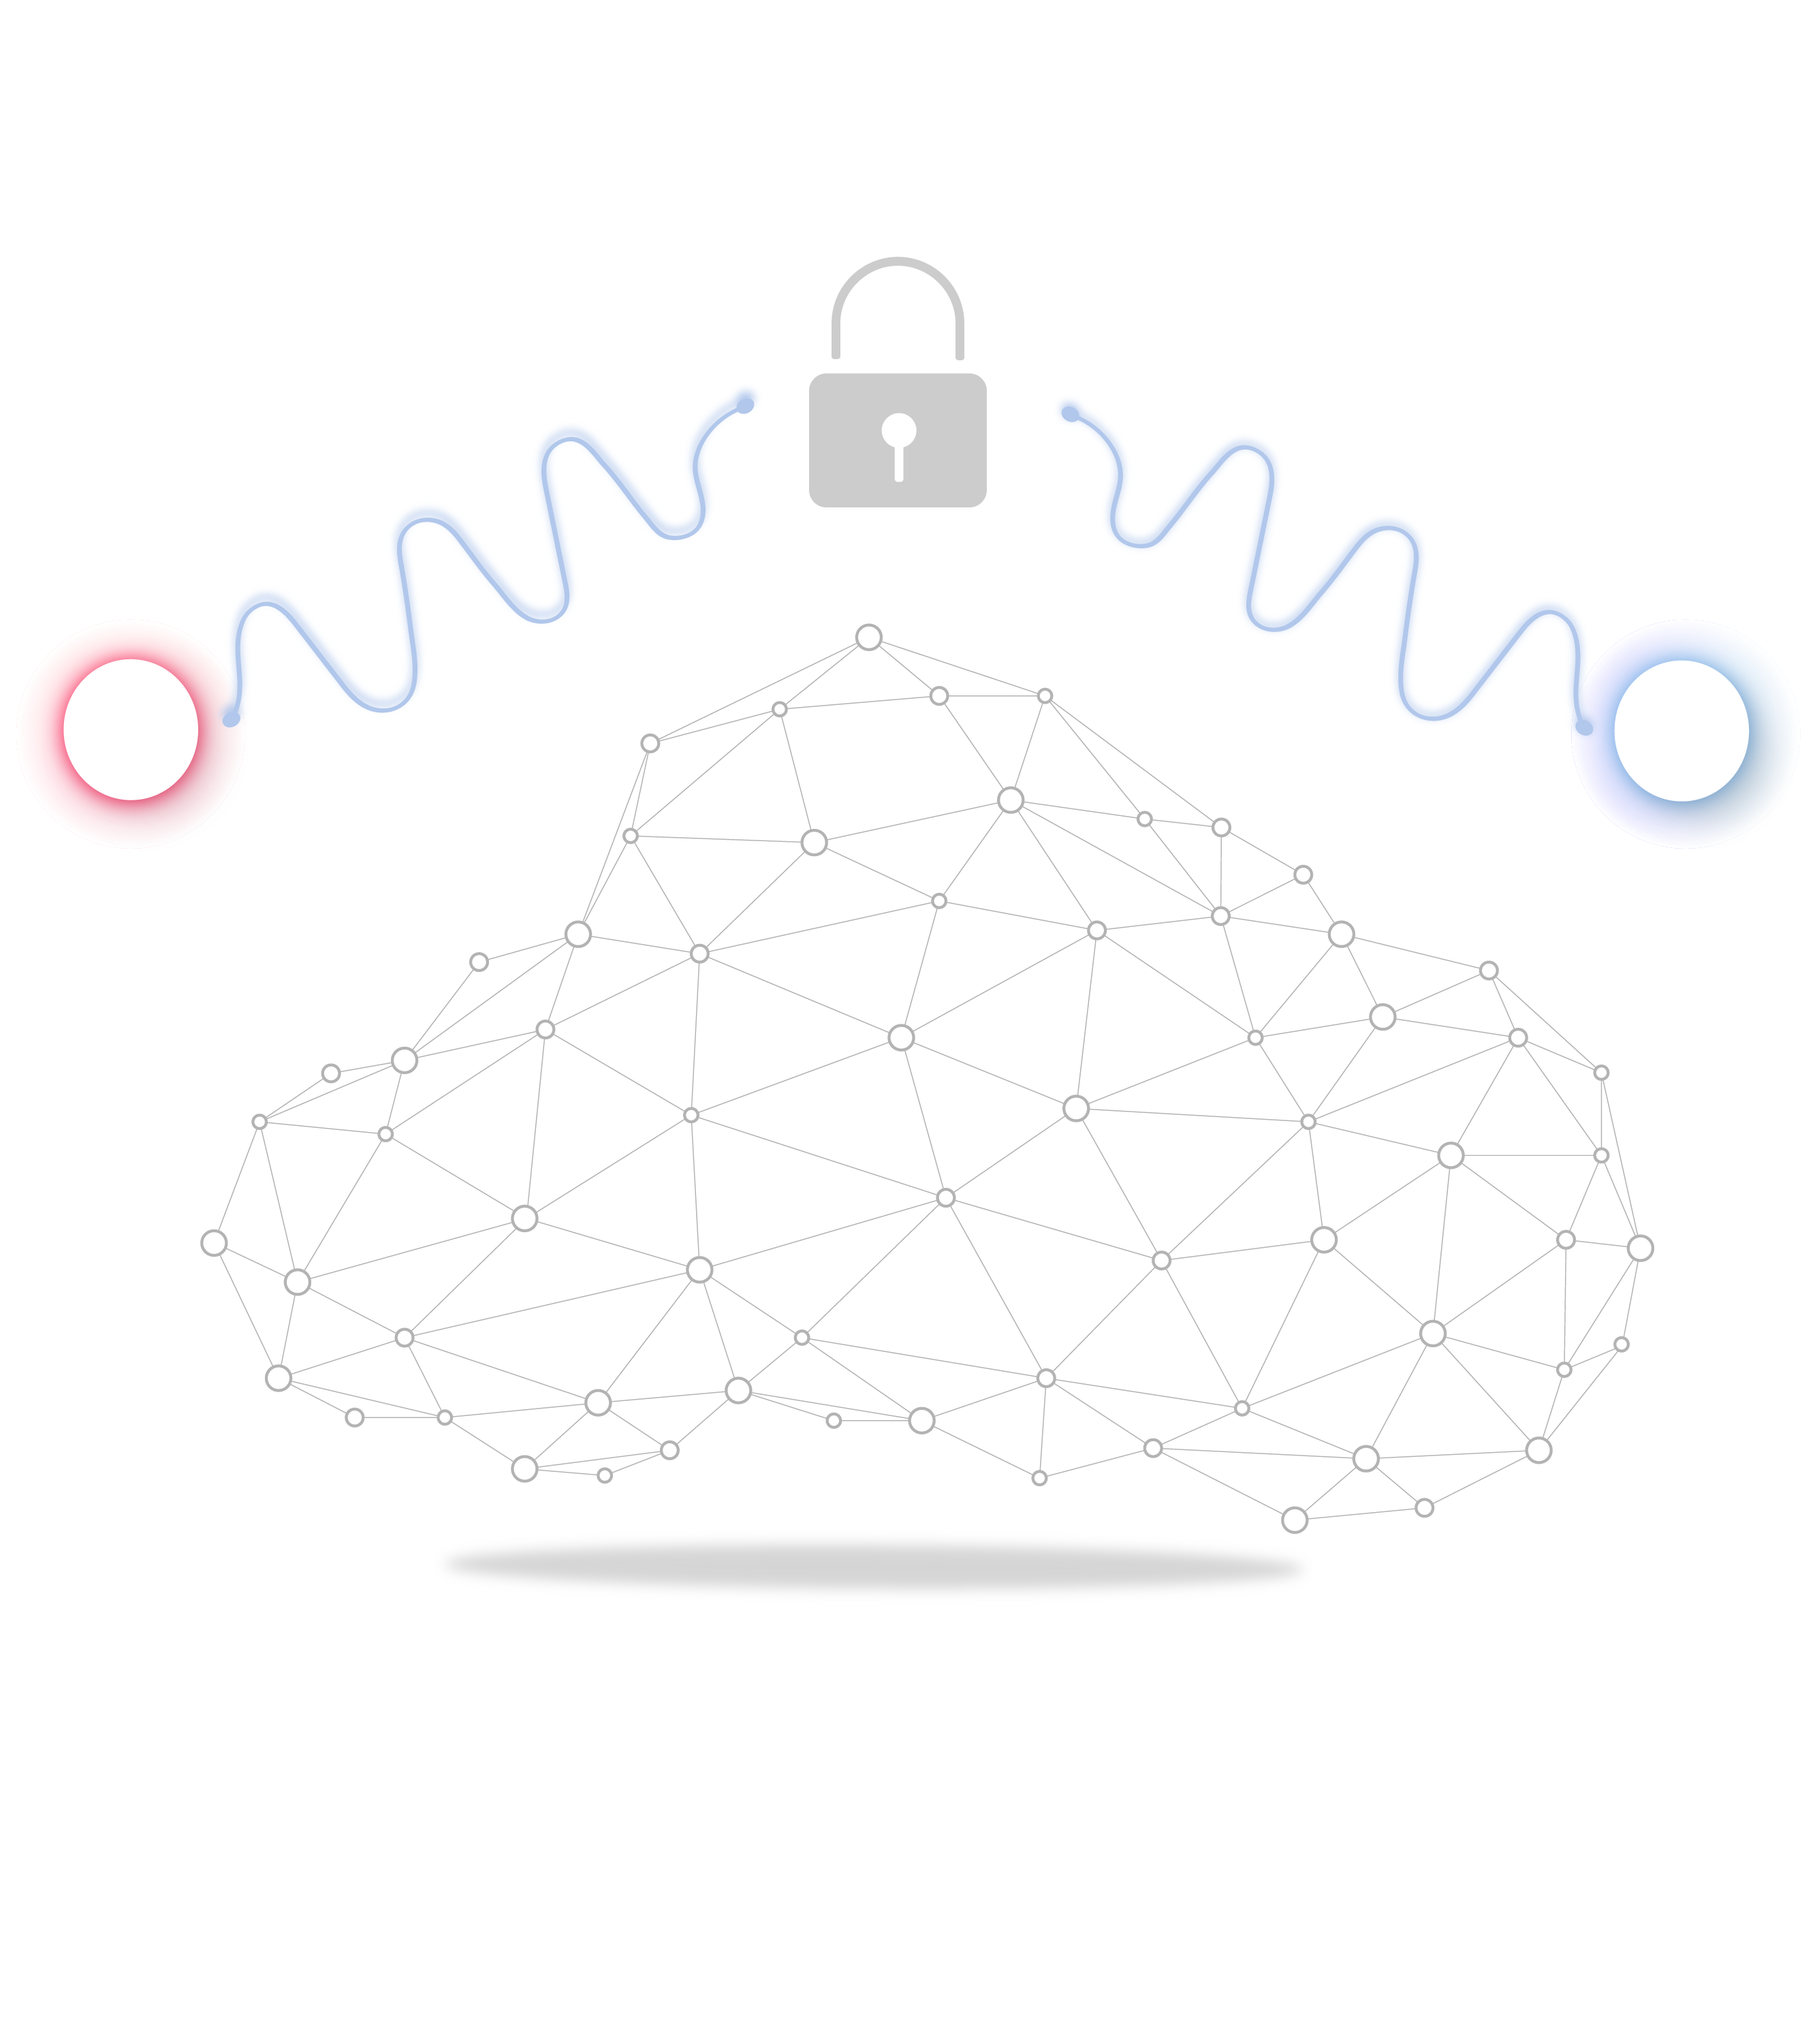 A secure connection is established through entanglement without needing to transmit data through the network